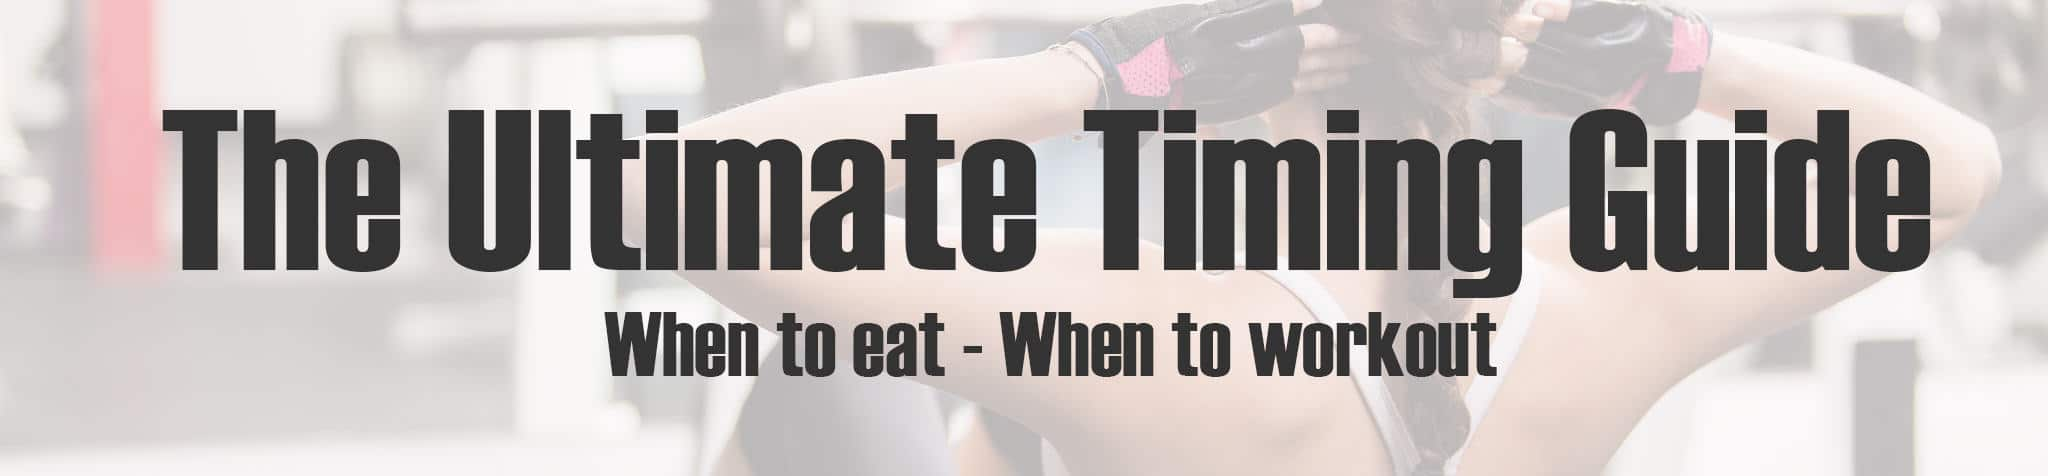 When to eat when to workout banner